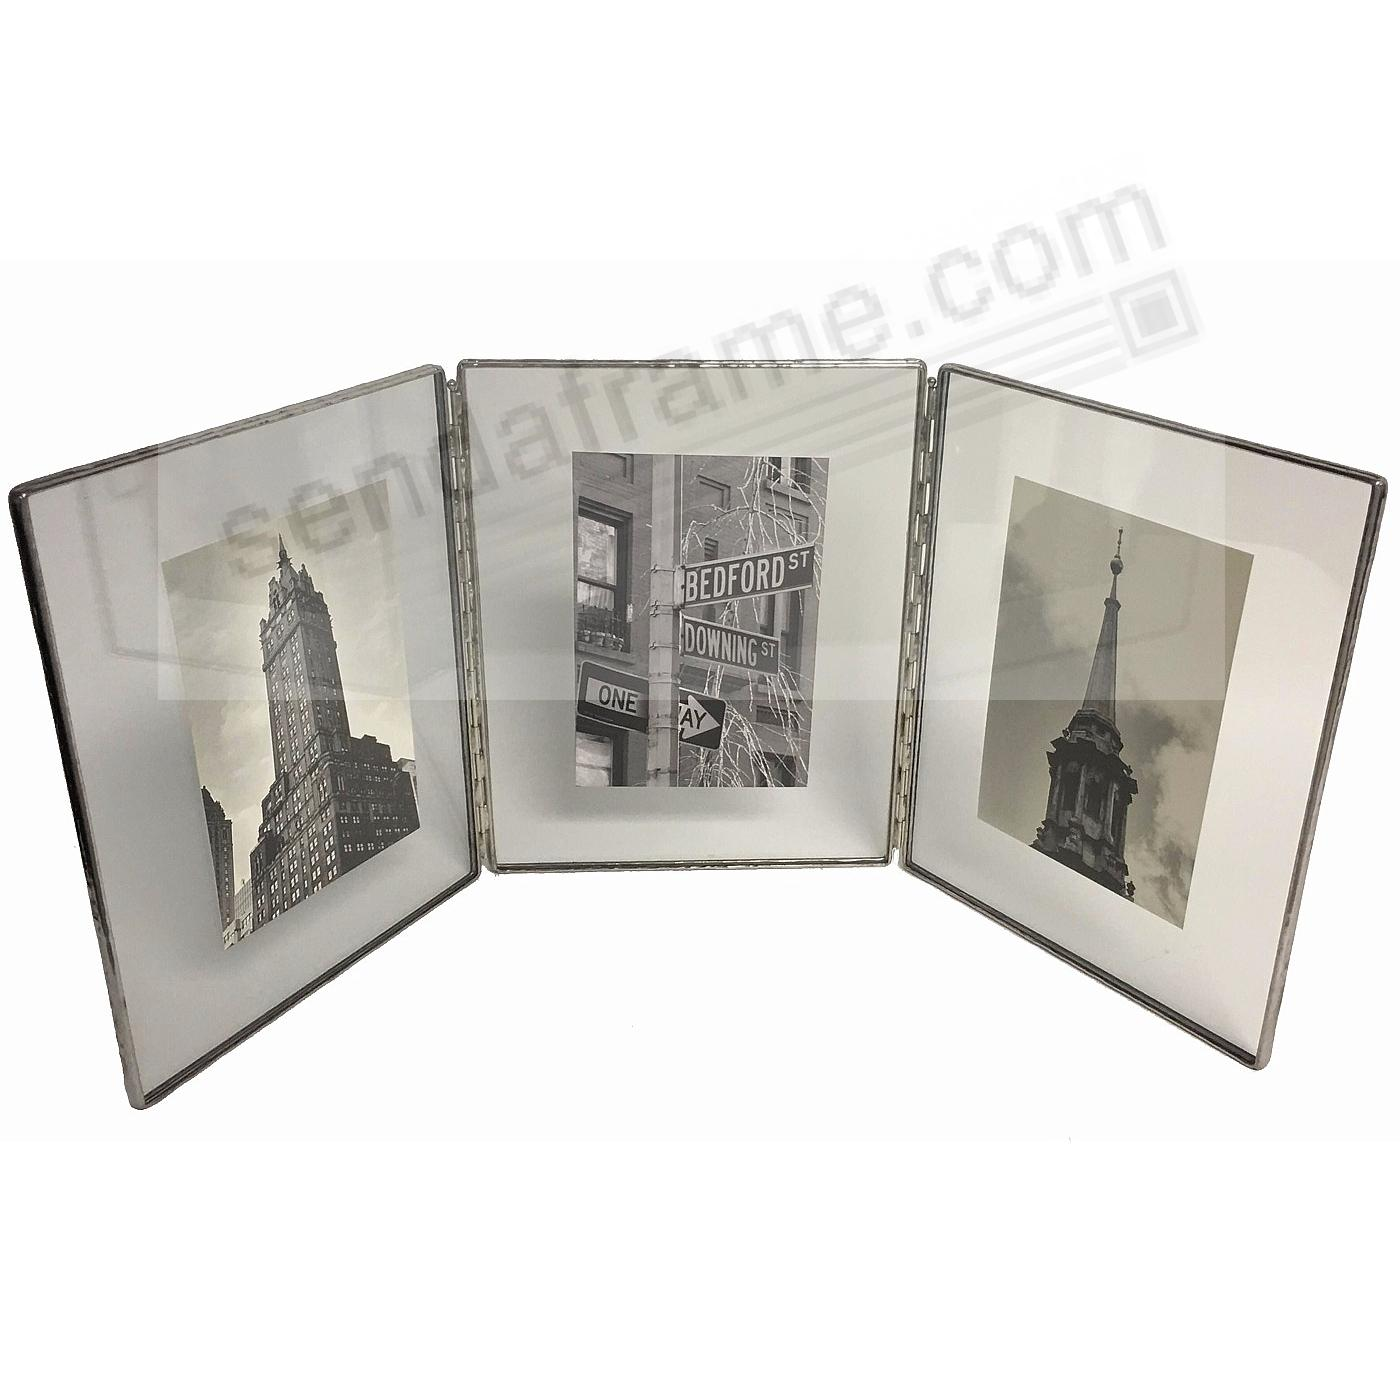 Clear Glass Float Frame 4x5/3x4 Hinged Triple Silver by Bedford ...